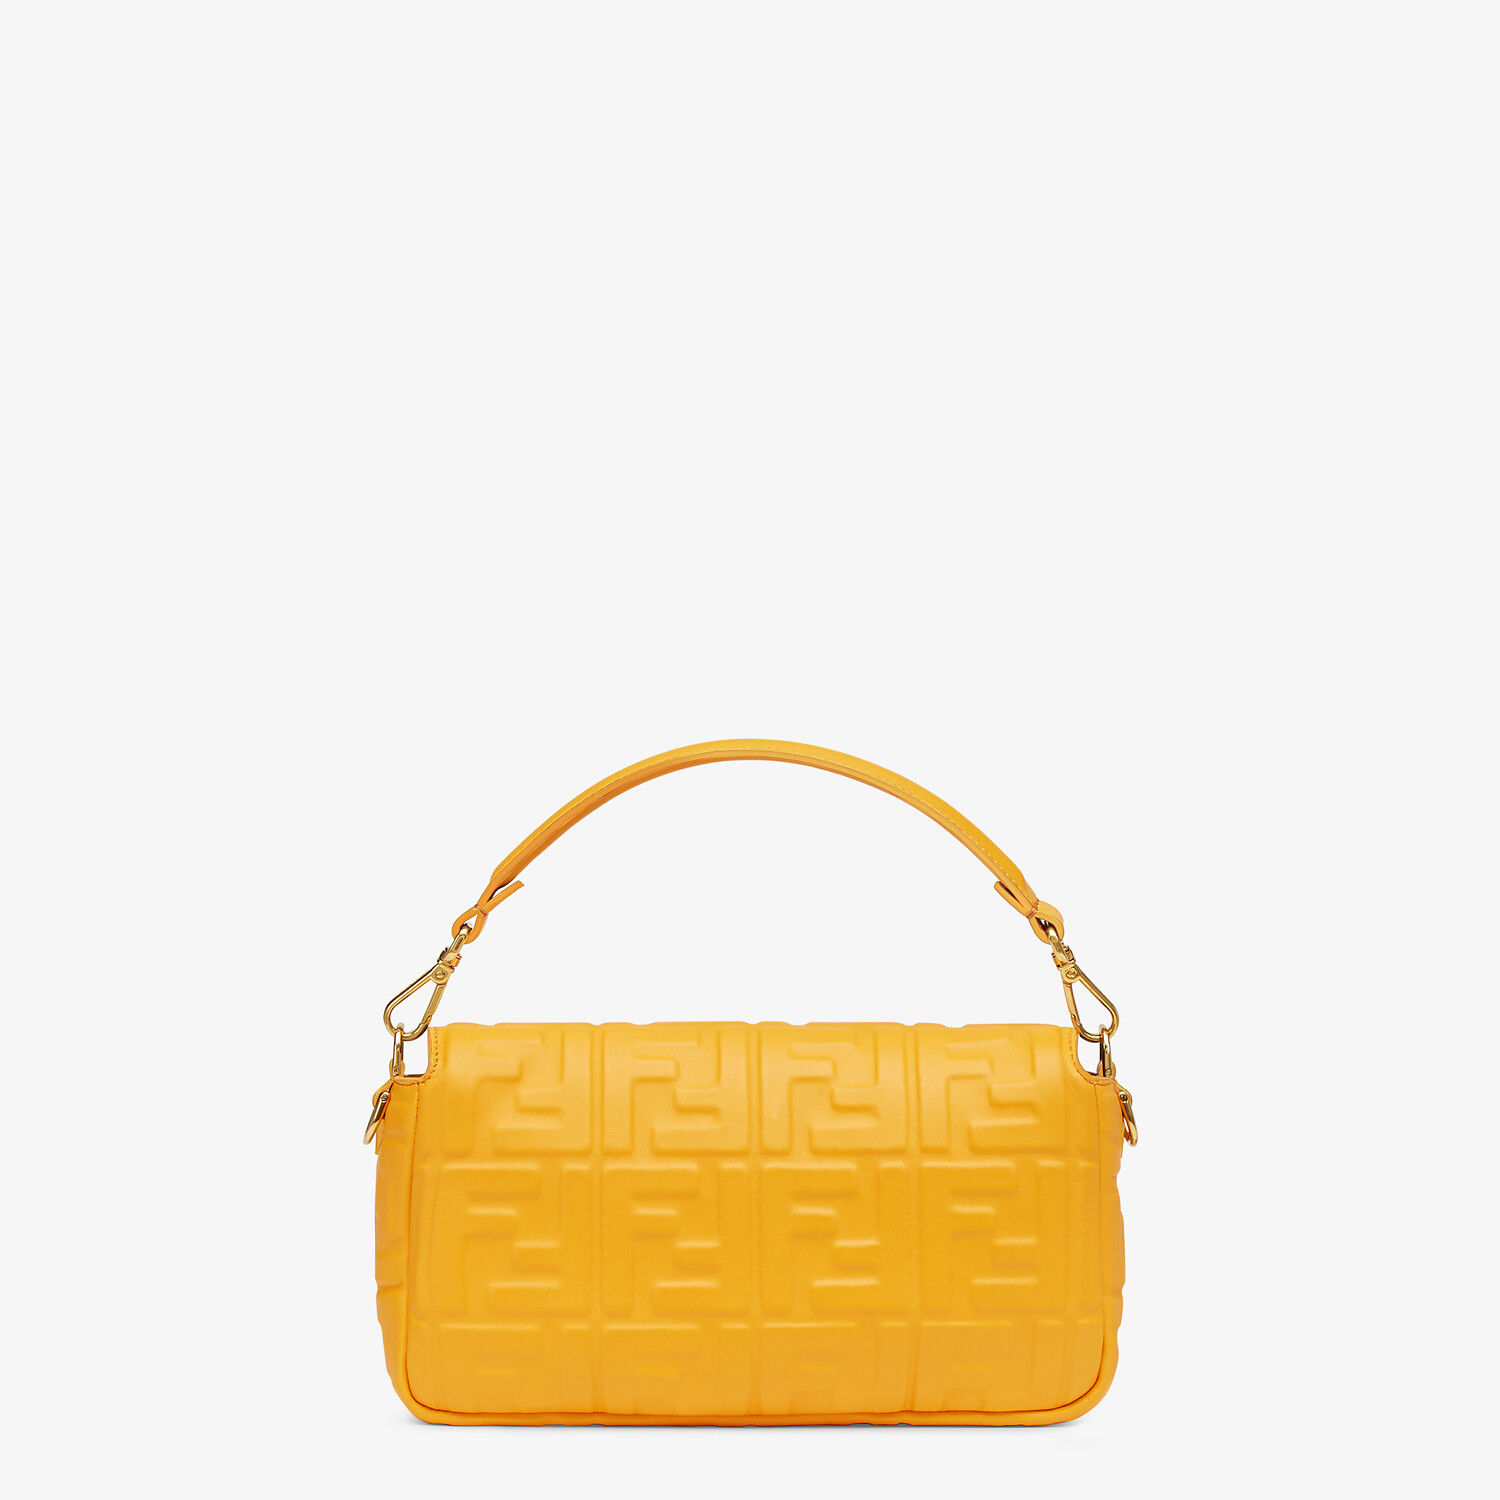 FENDI BAGUETTE - Orange nappa leather bag - view 4 detail